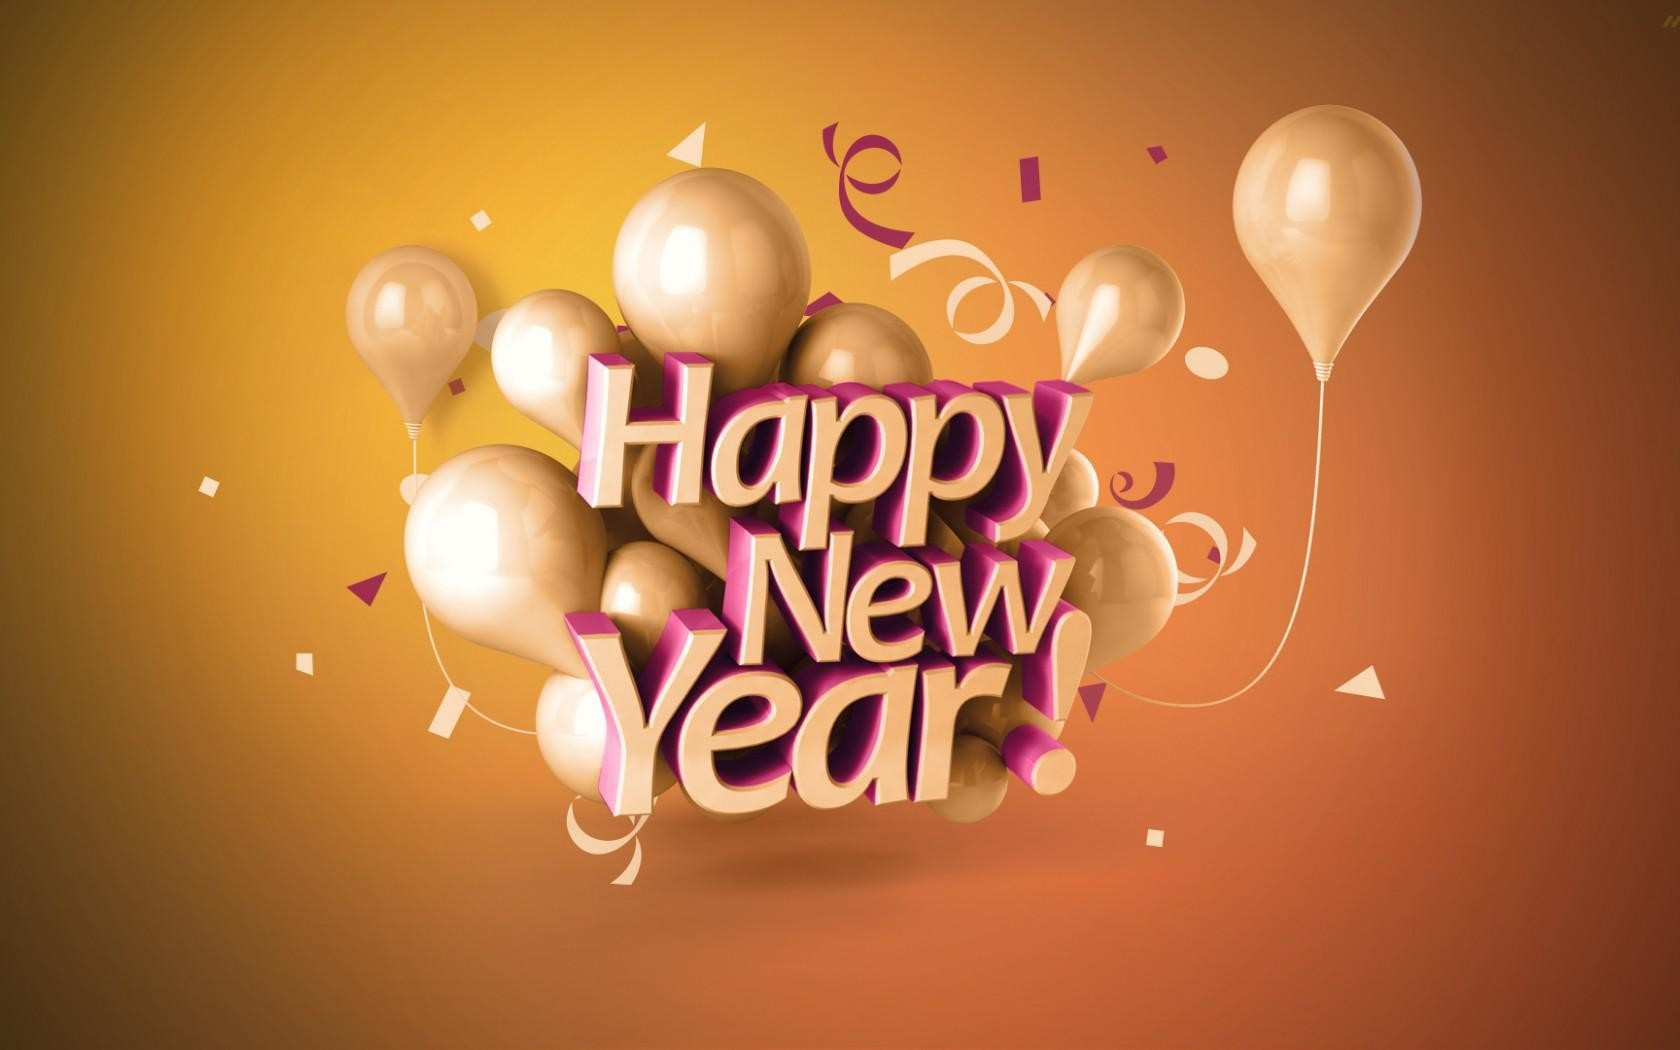 Cute Happy New Year Greeting Wishes Whatsapp Cover Screensavers Free Download